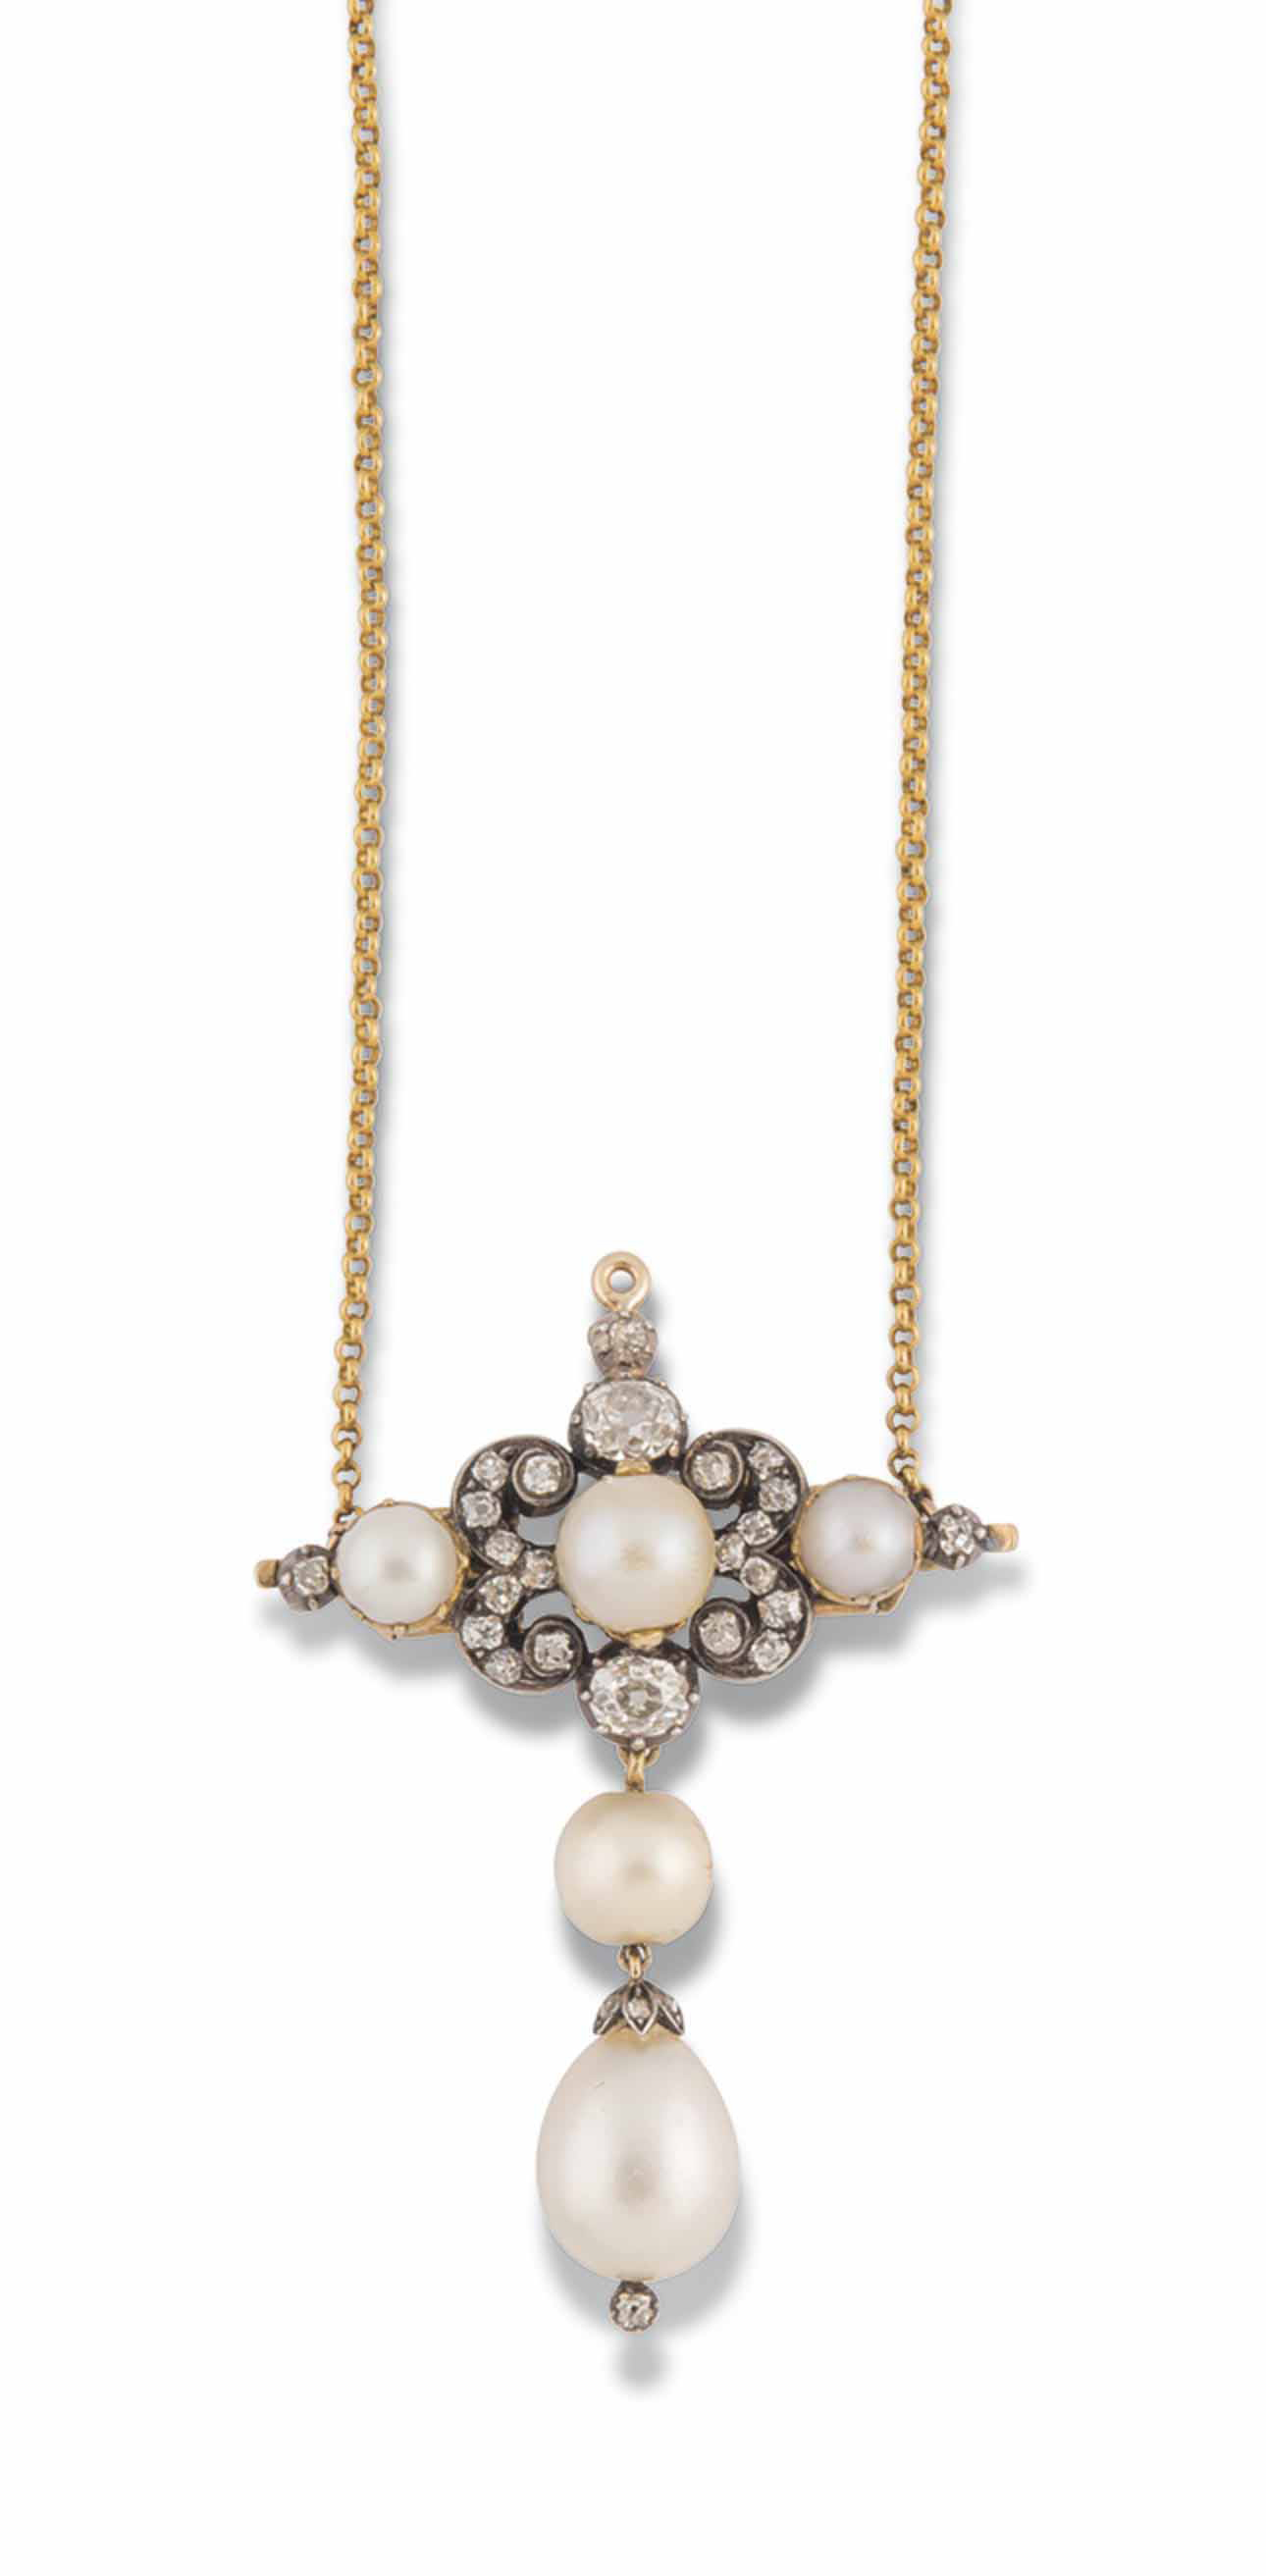 A MID 19TH CENTURY PEARL AND D